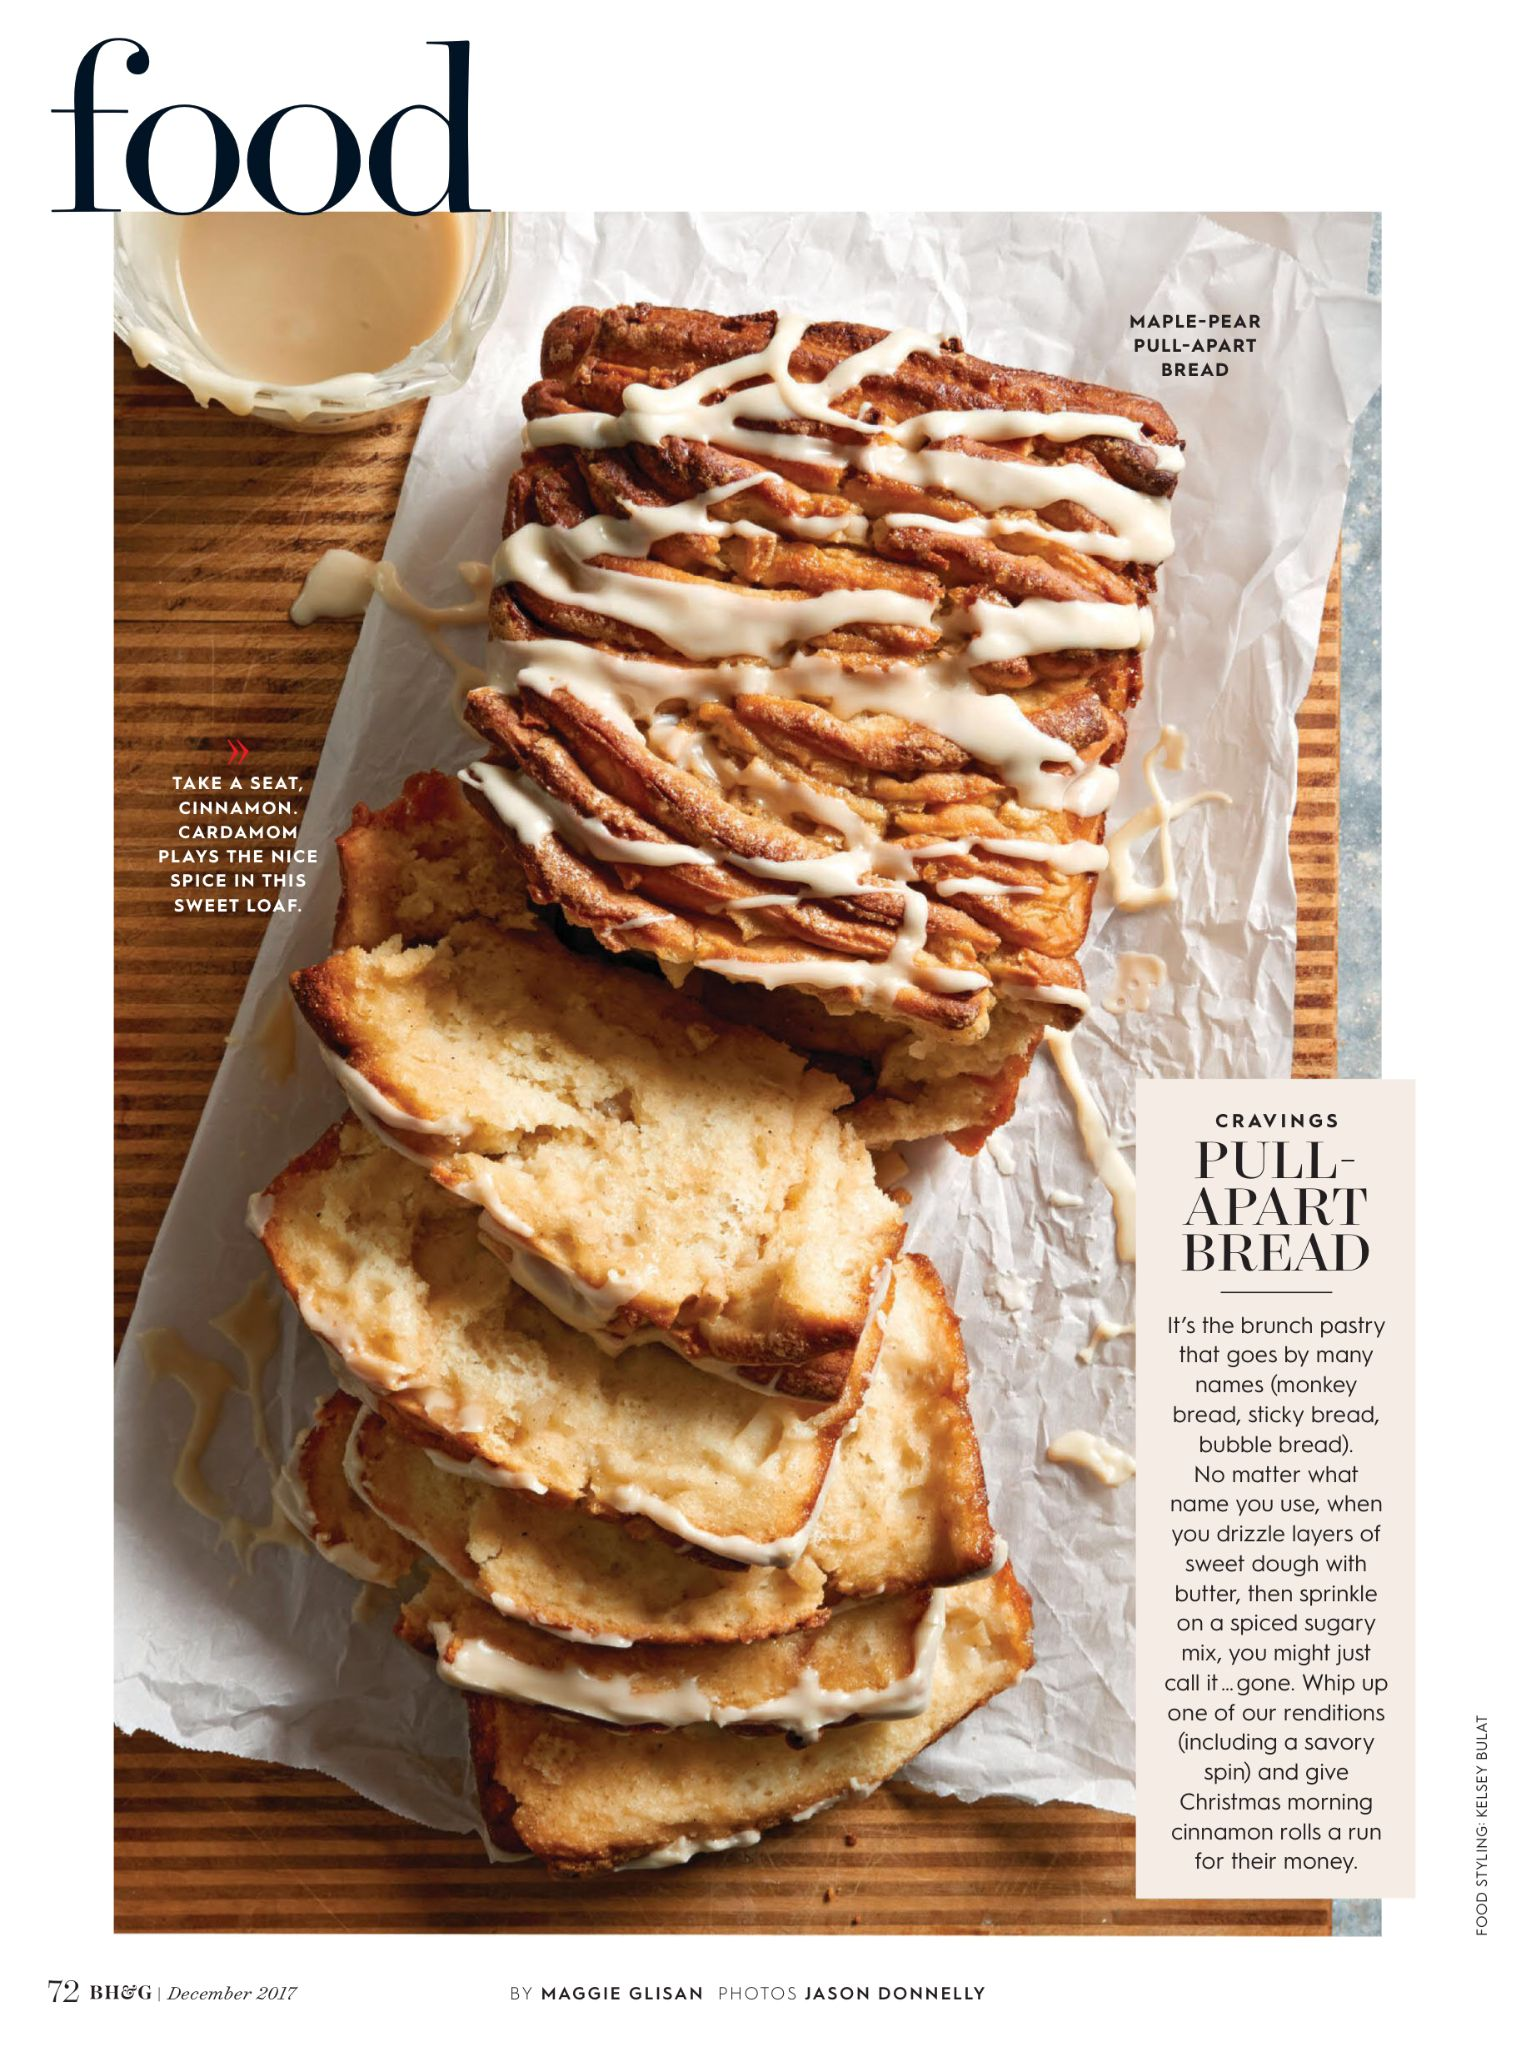 Cravings From Better Homes And Gardens December 2017 Read It On The Texture App Unlimited Access To 200 Top M Brunch Pastries Sweet Dough Pull Apart Bread